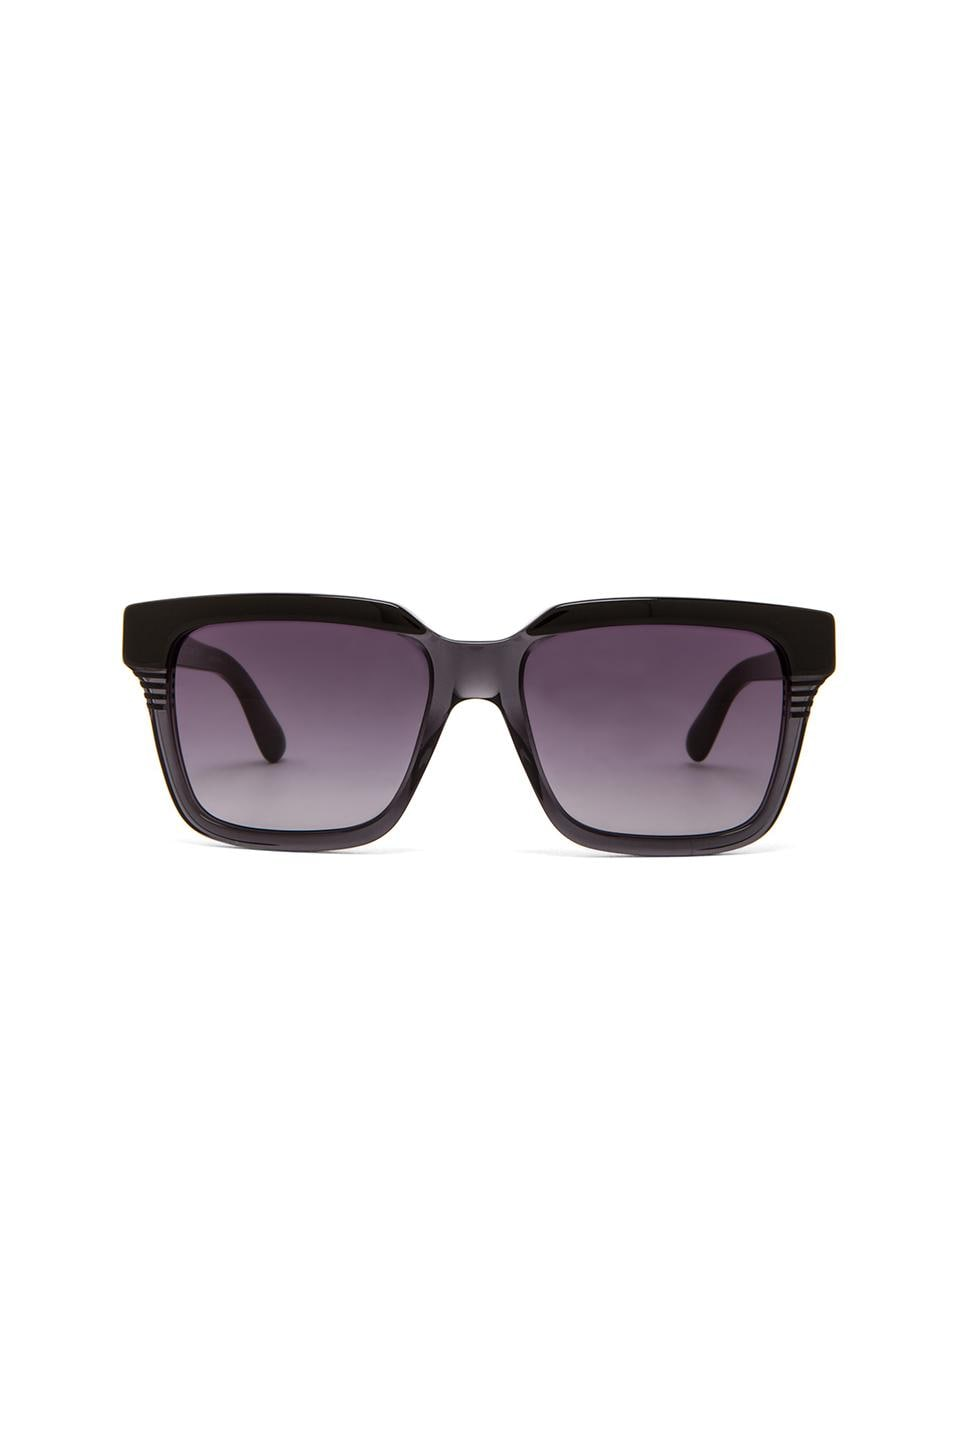 Marc by Marc Jacobs Thick Frame Square Sunglasses in Black Gray